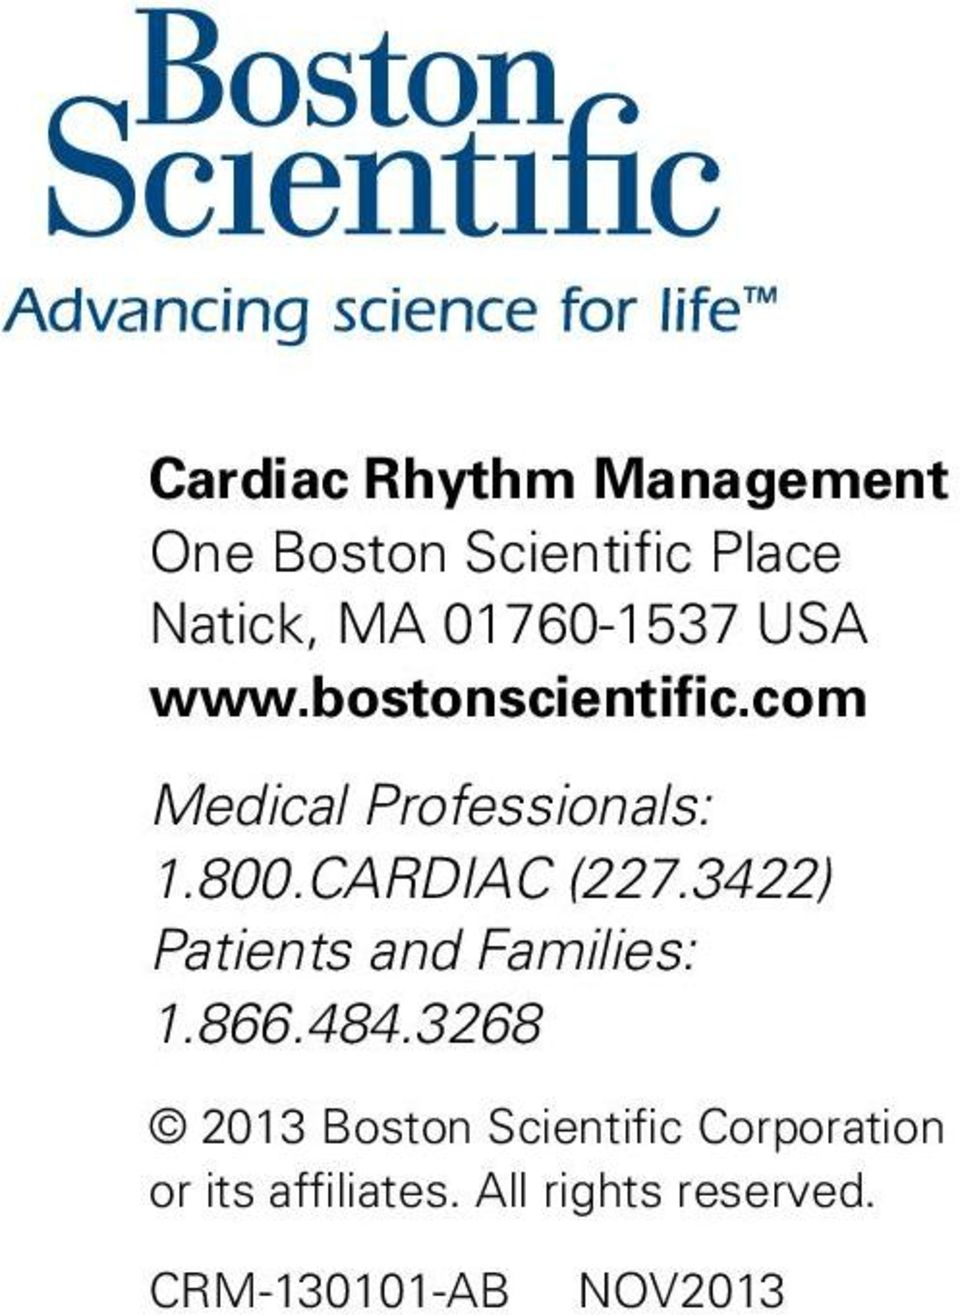 CARDIAC (227.3422) Patients and Families: 1.866.484.